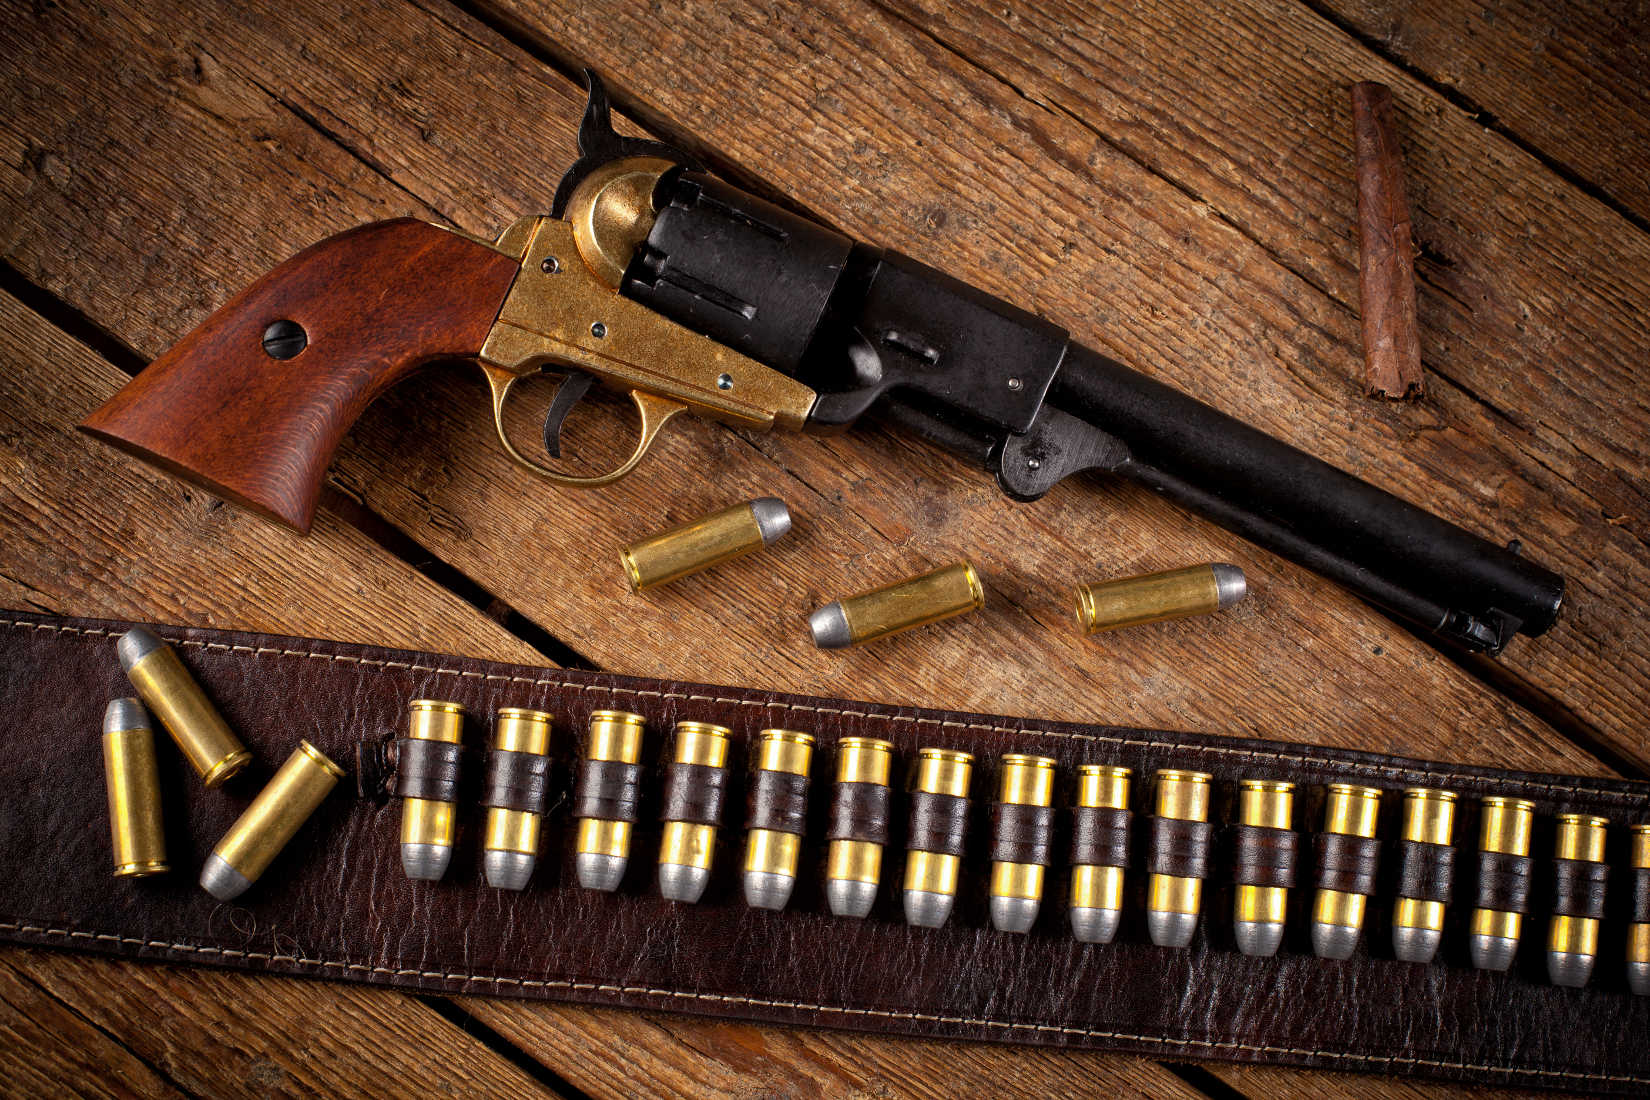 History Repeats Itself: Recalling Early American Gun Control in the Wild West